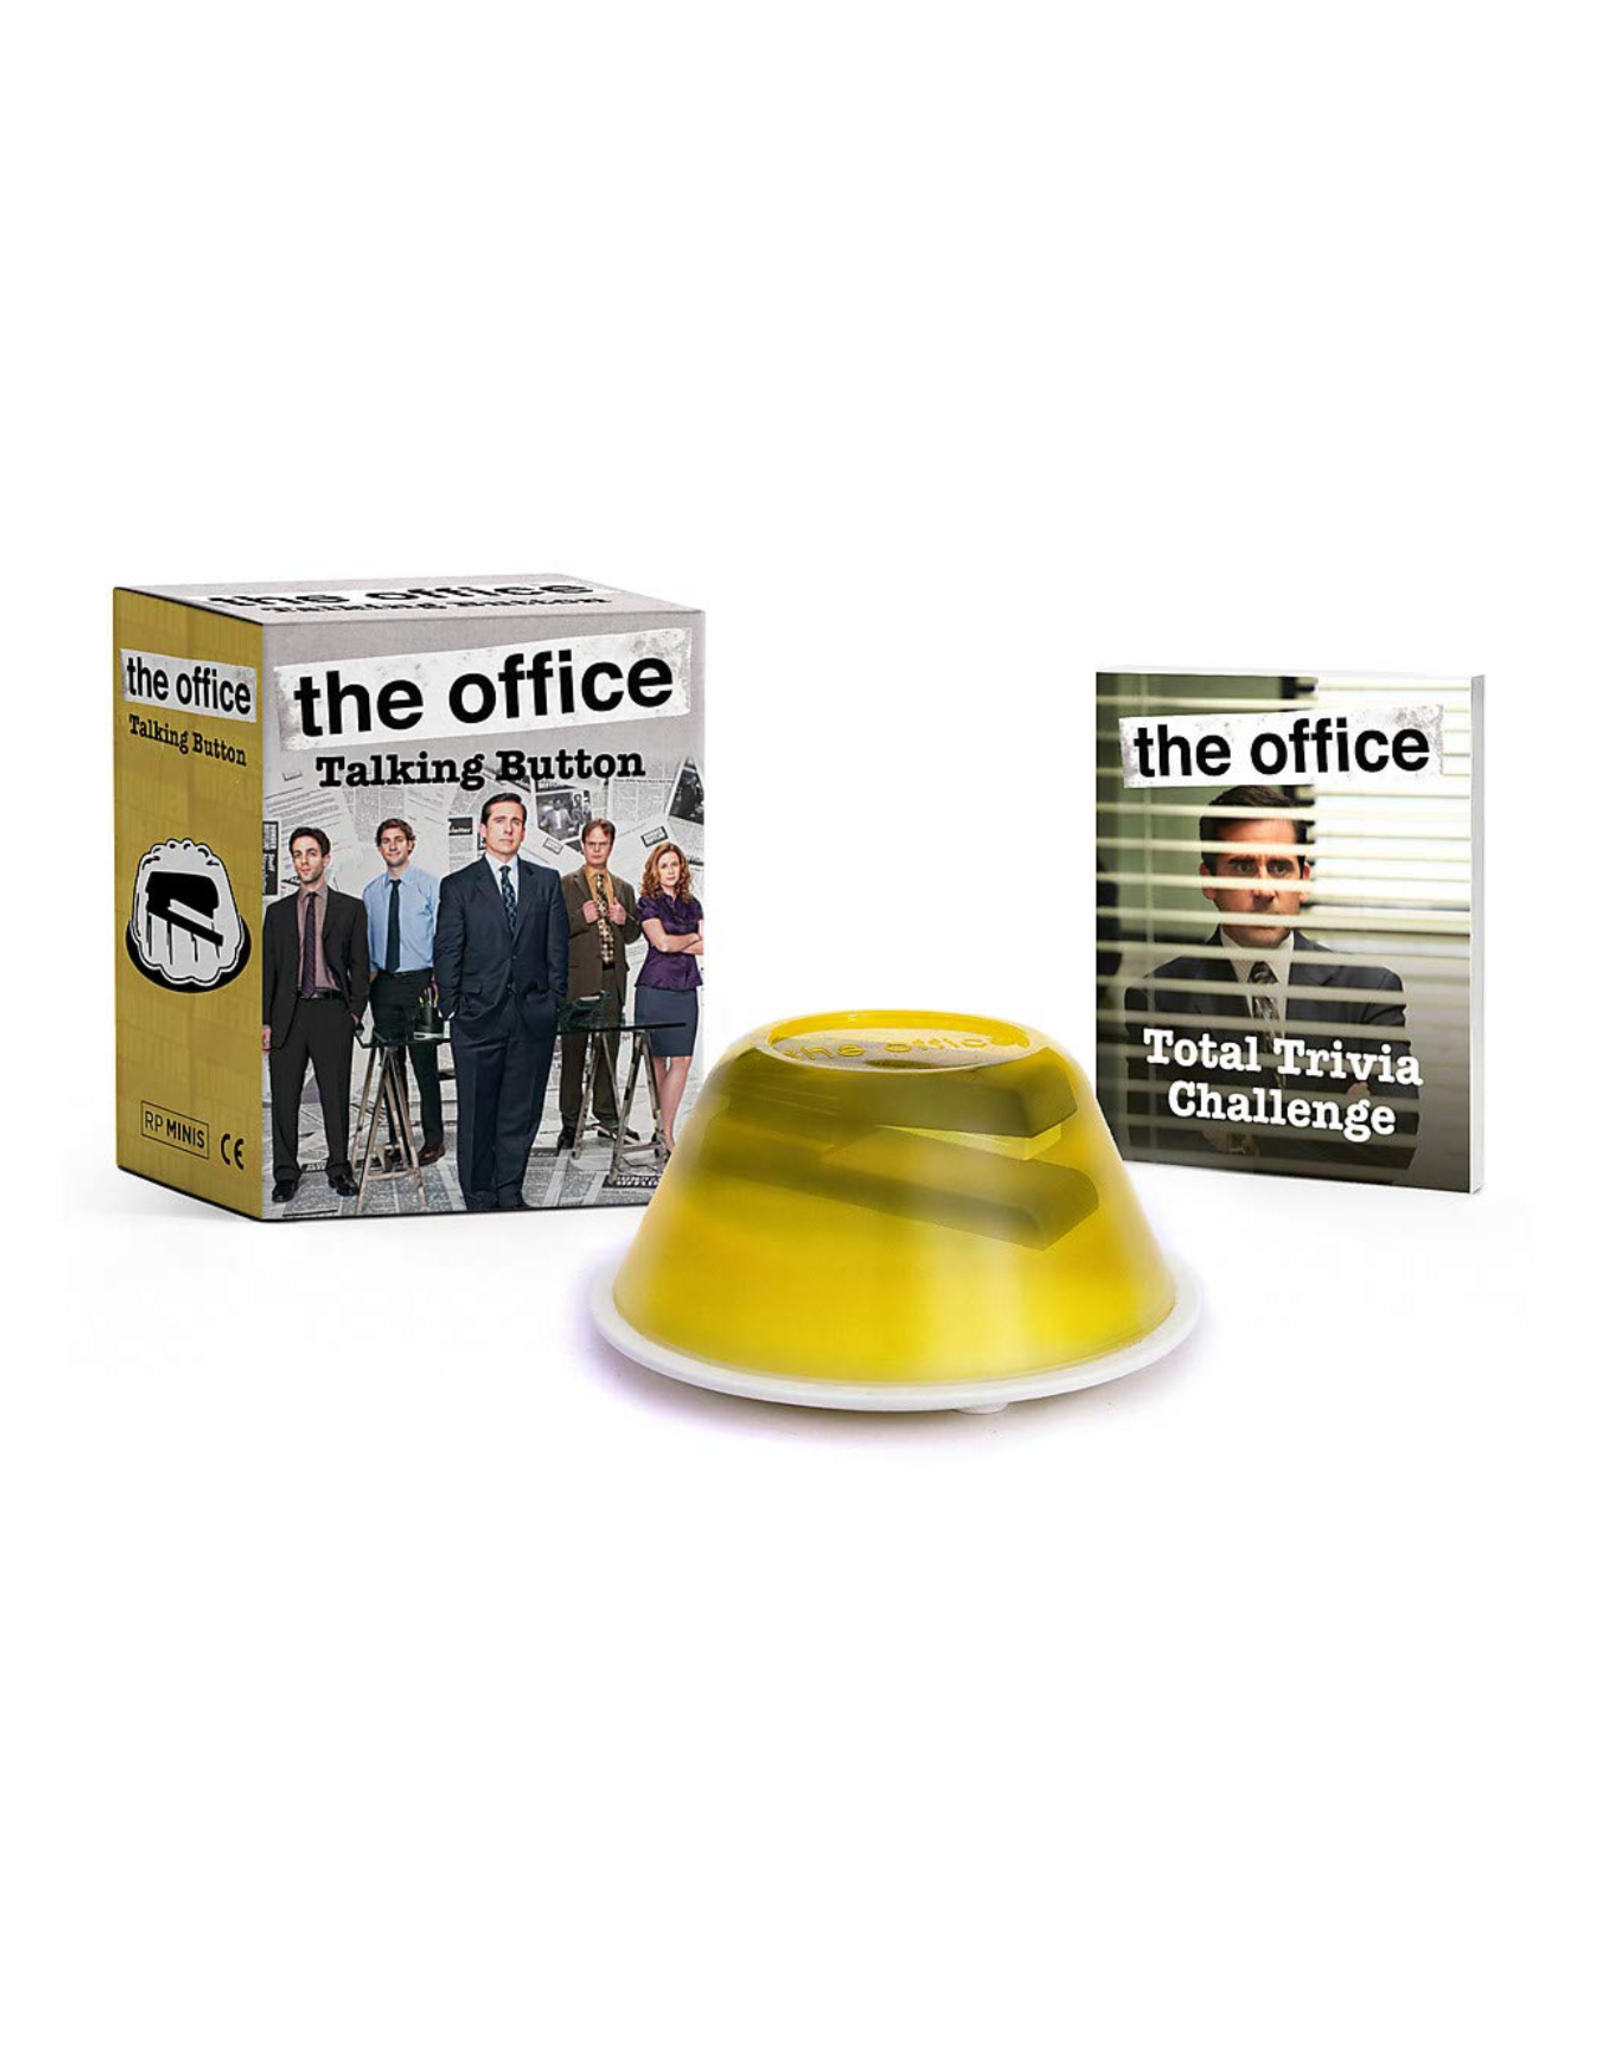 The Office Talking Button